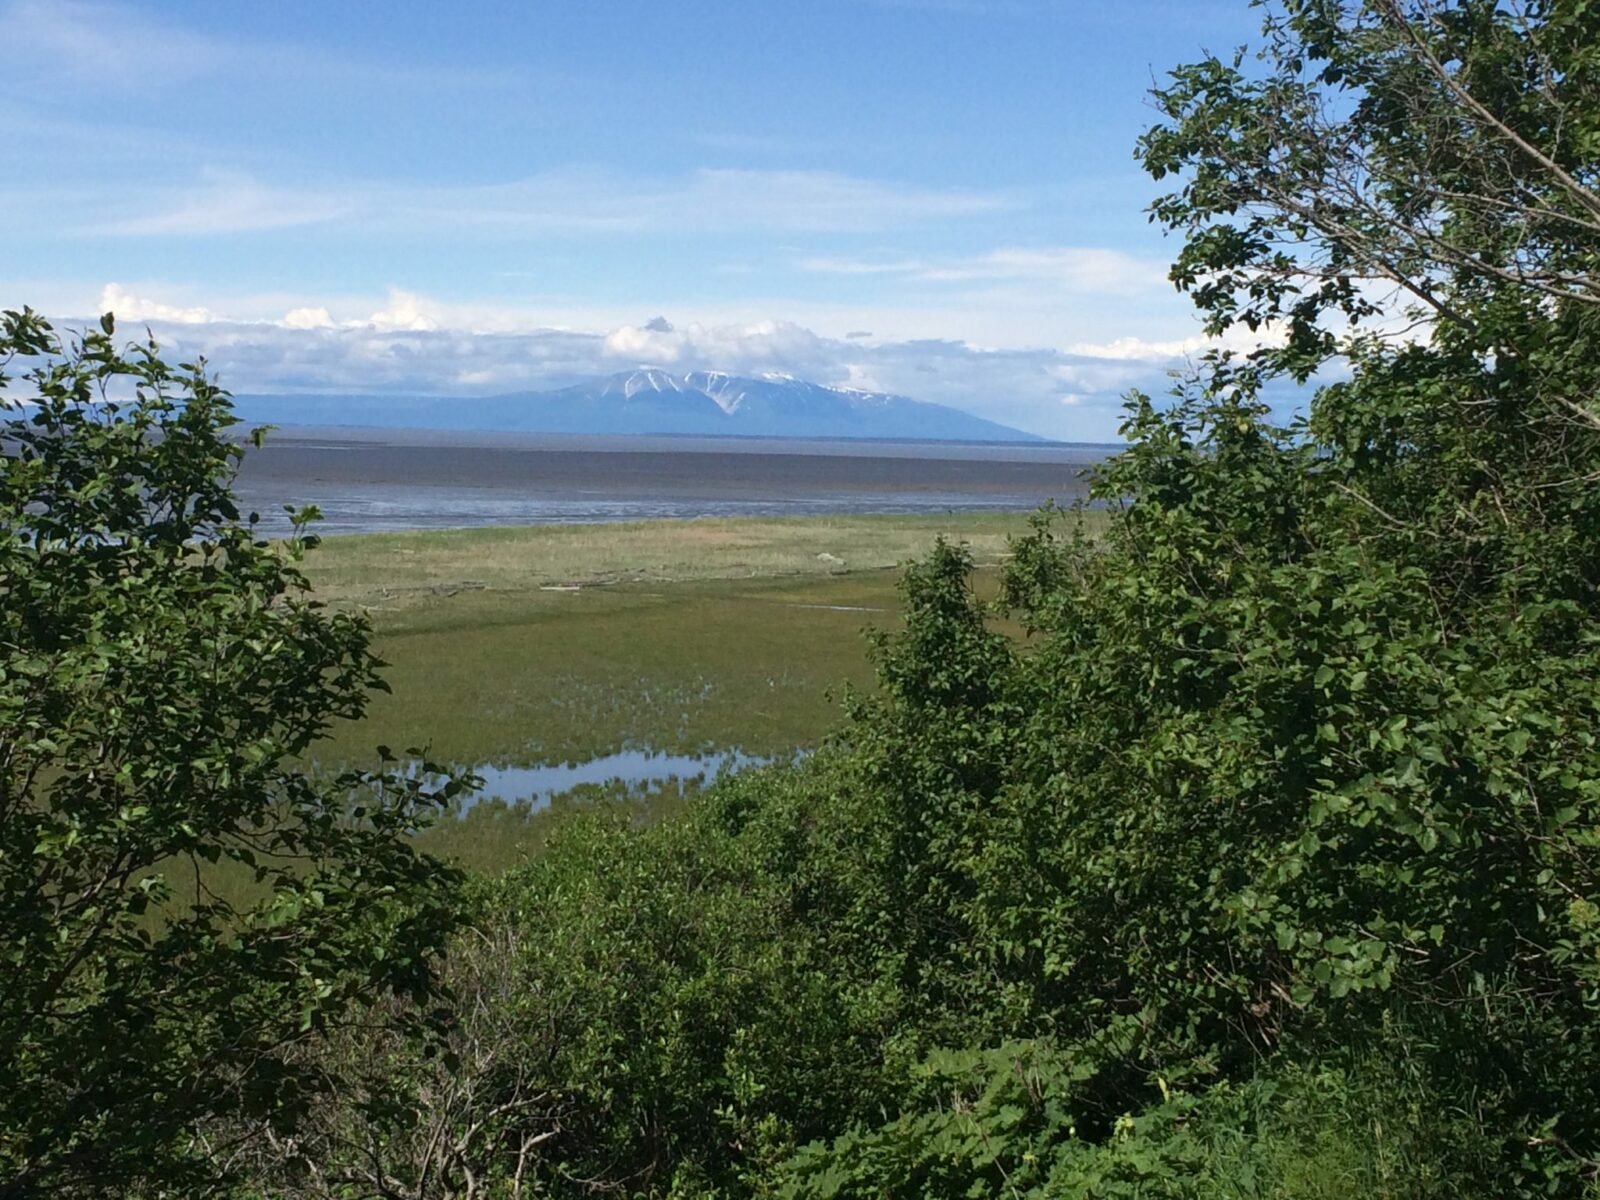 One of the best things to do in Anchorage is walk or bike the coastal trail which goes along the water and tideflats in Anchorage. Distant mountains and clouds can be seen across the water. Trees and bushes are in the foreground